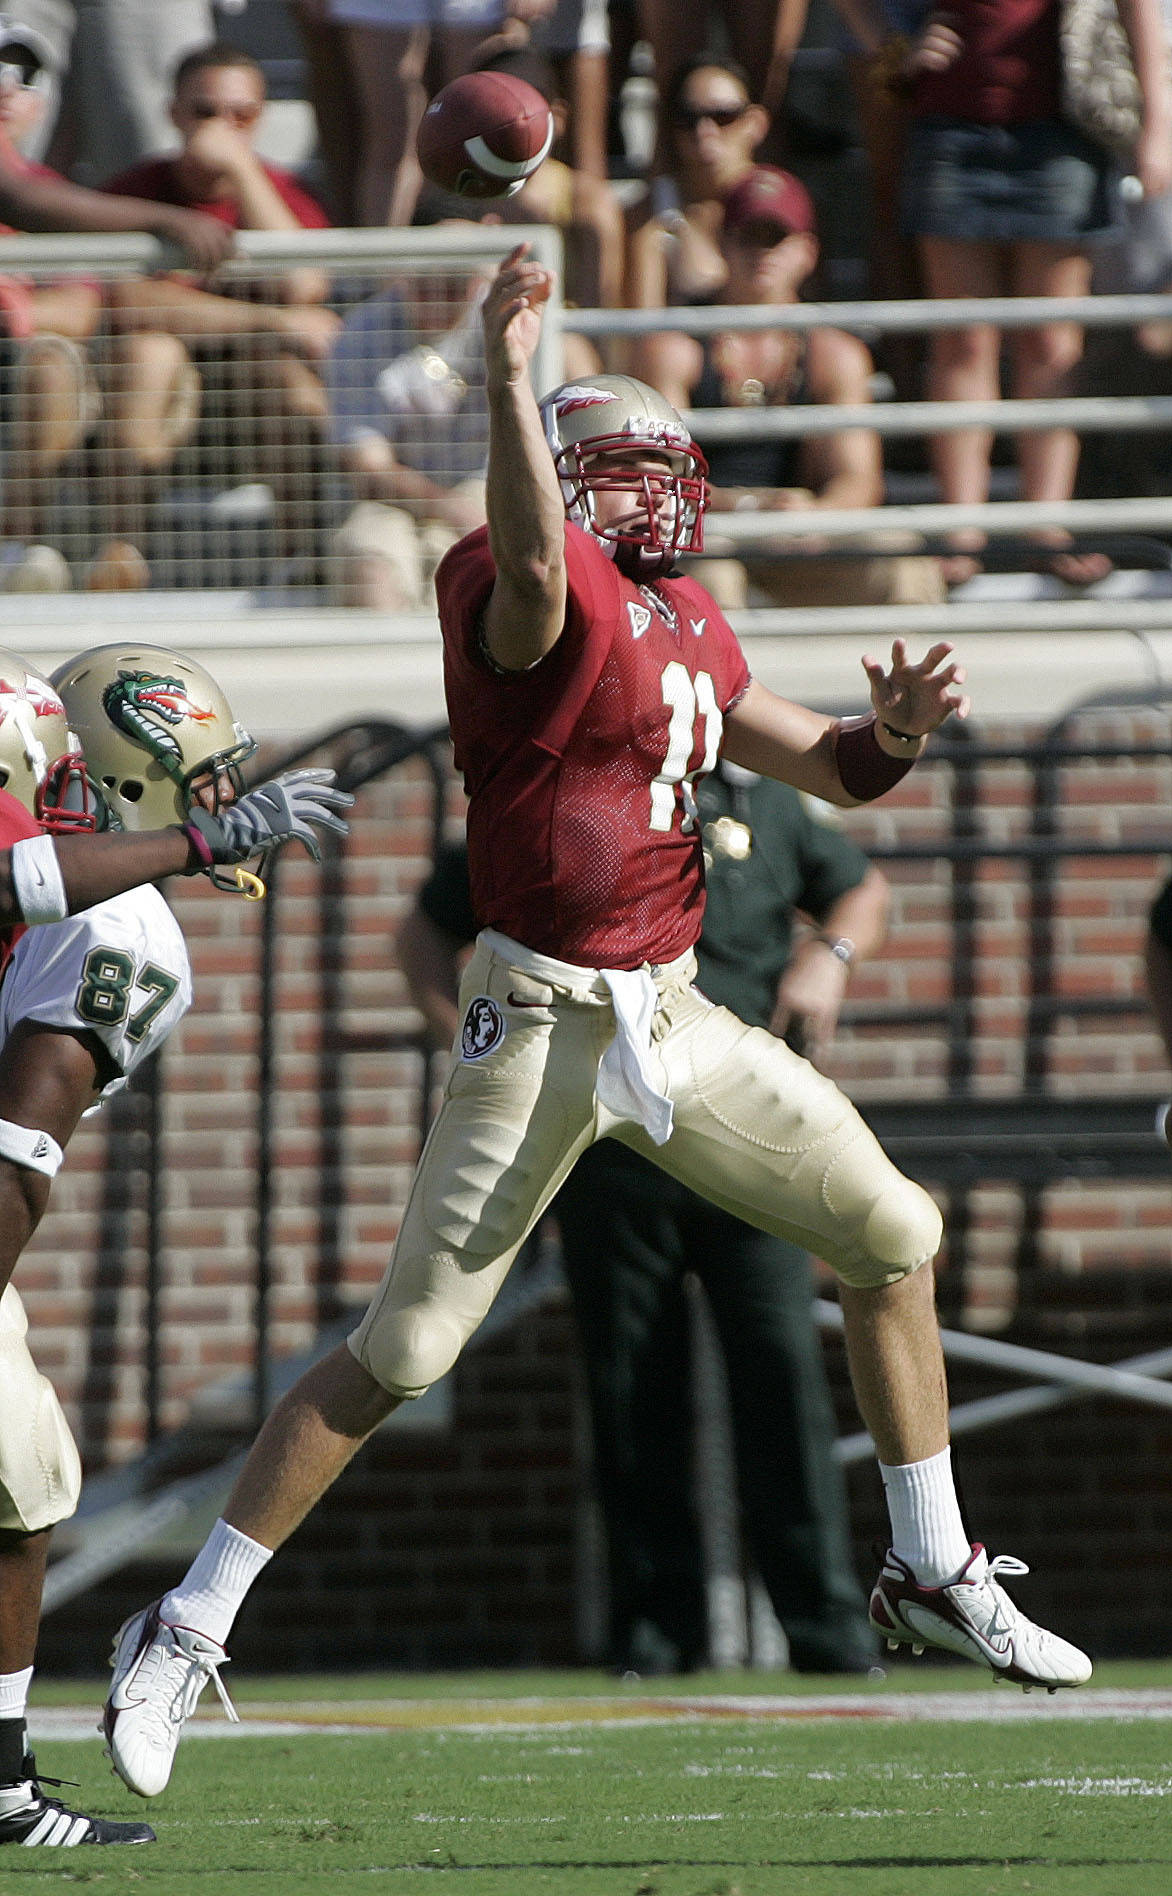 Florida State quarterback Drew Weatherford throws a first-quarter pass as UAB defender Bryant Turner, left, chases the play during a football game Saturday, Sept. 8, 2007, in Tallahassee, Fla.(AP Photo/Phil Coale)